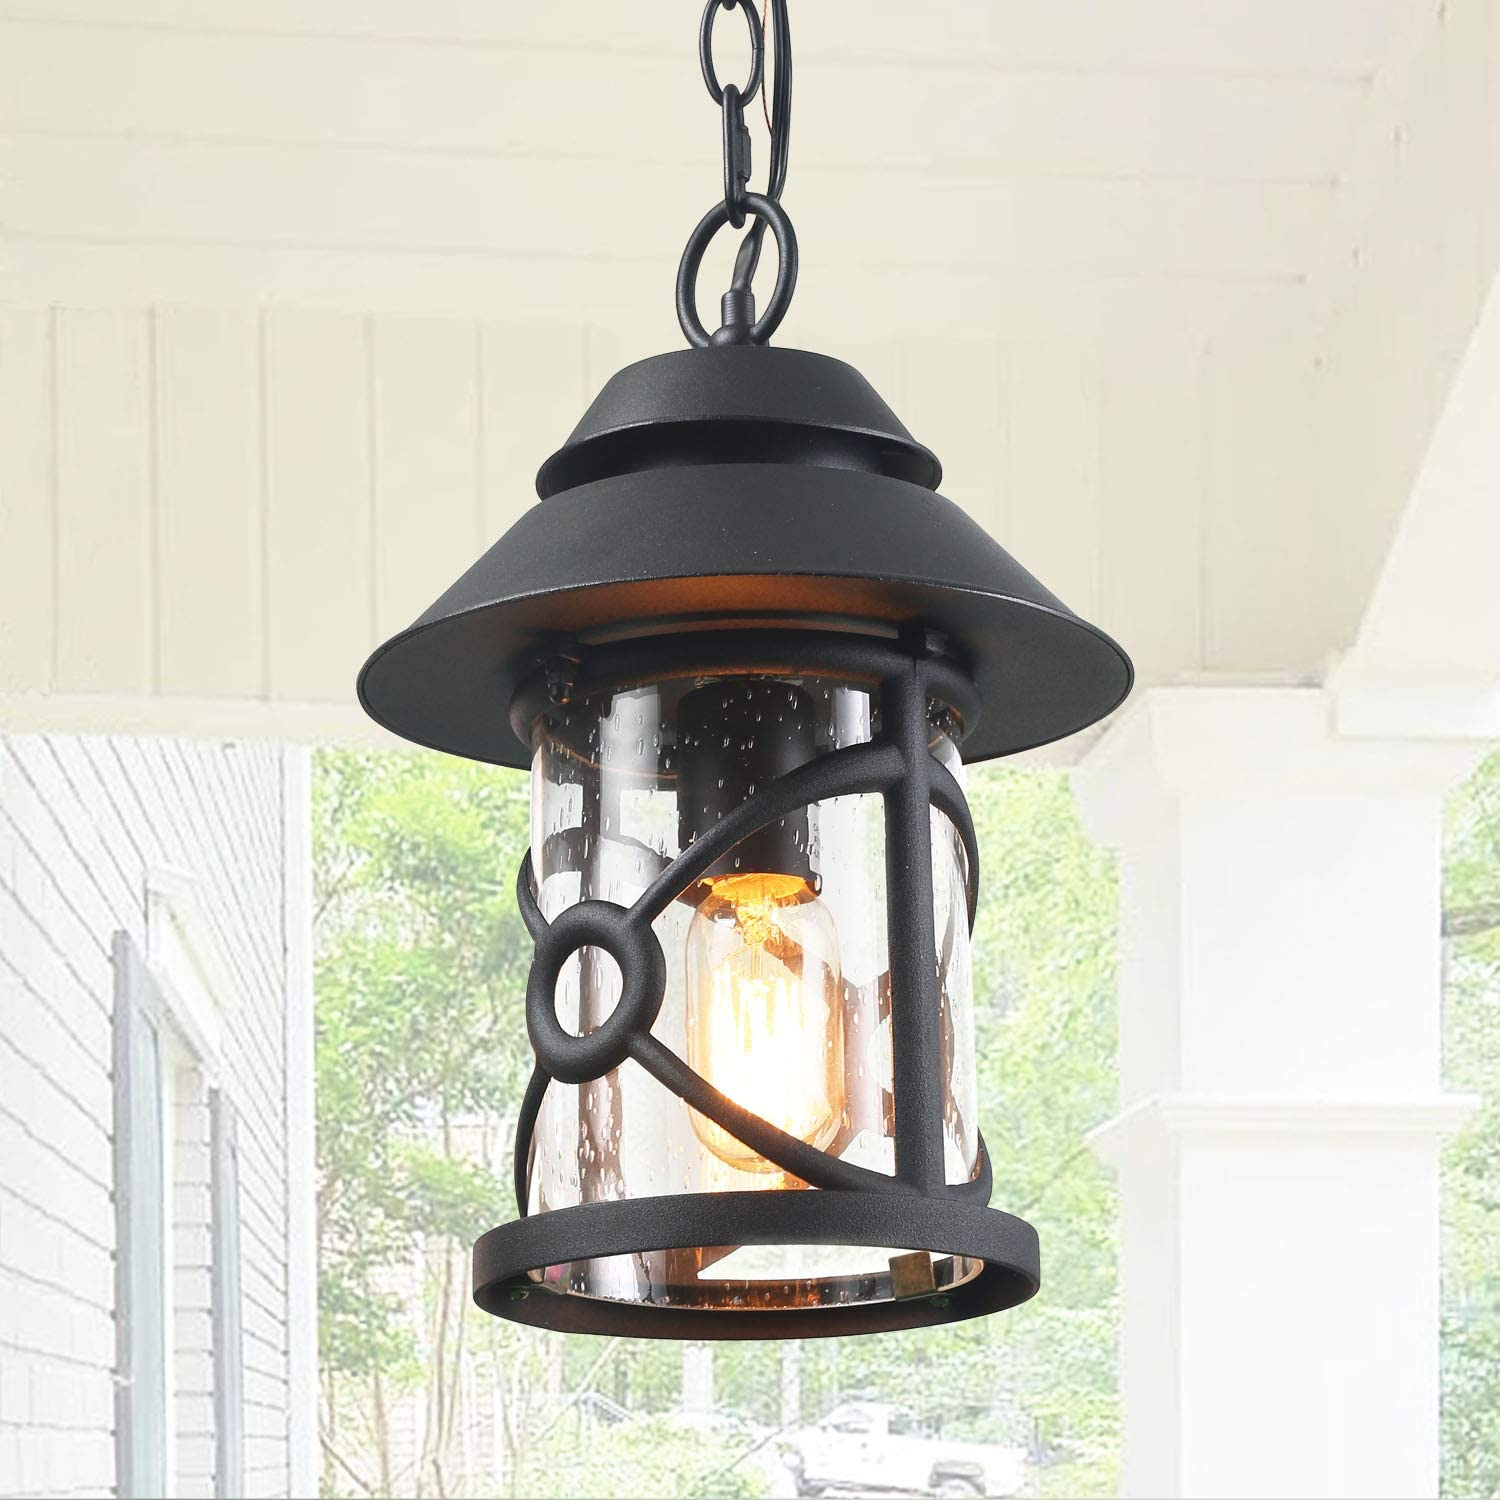 log barn outdoor pendant lights 12 6 farmhouse exterior hanging lights in black finish with clear seeded glass rustic outside pendant lantern for